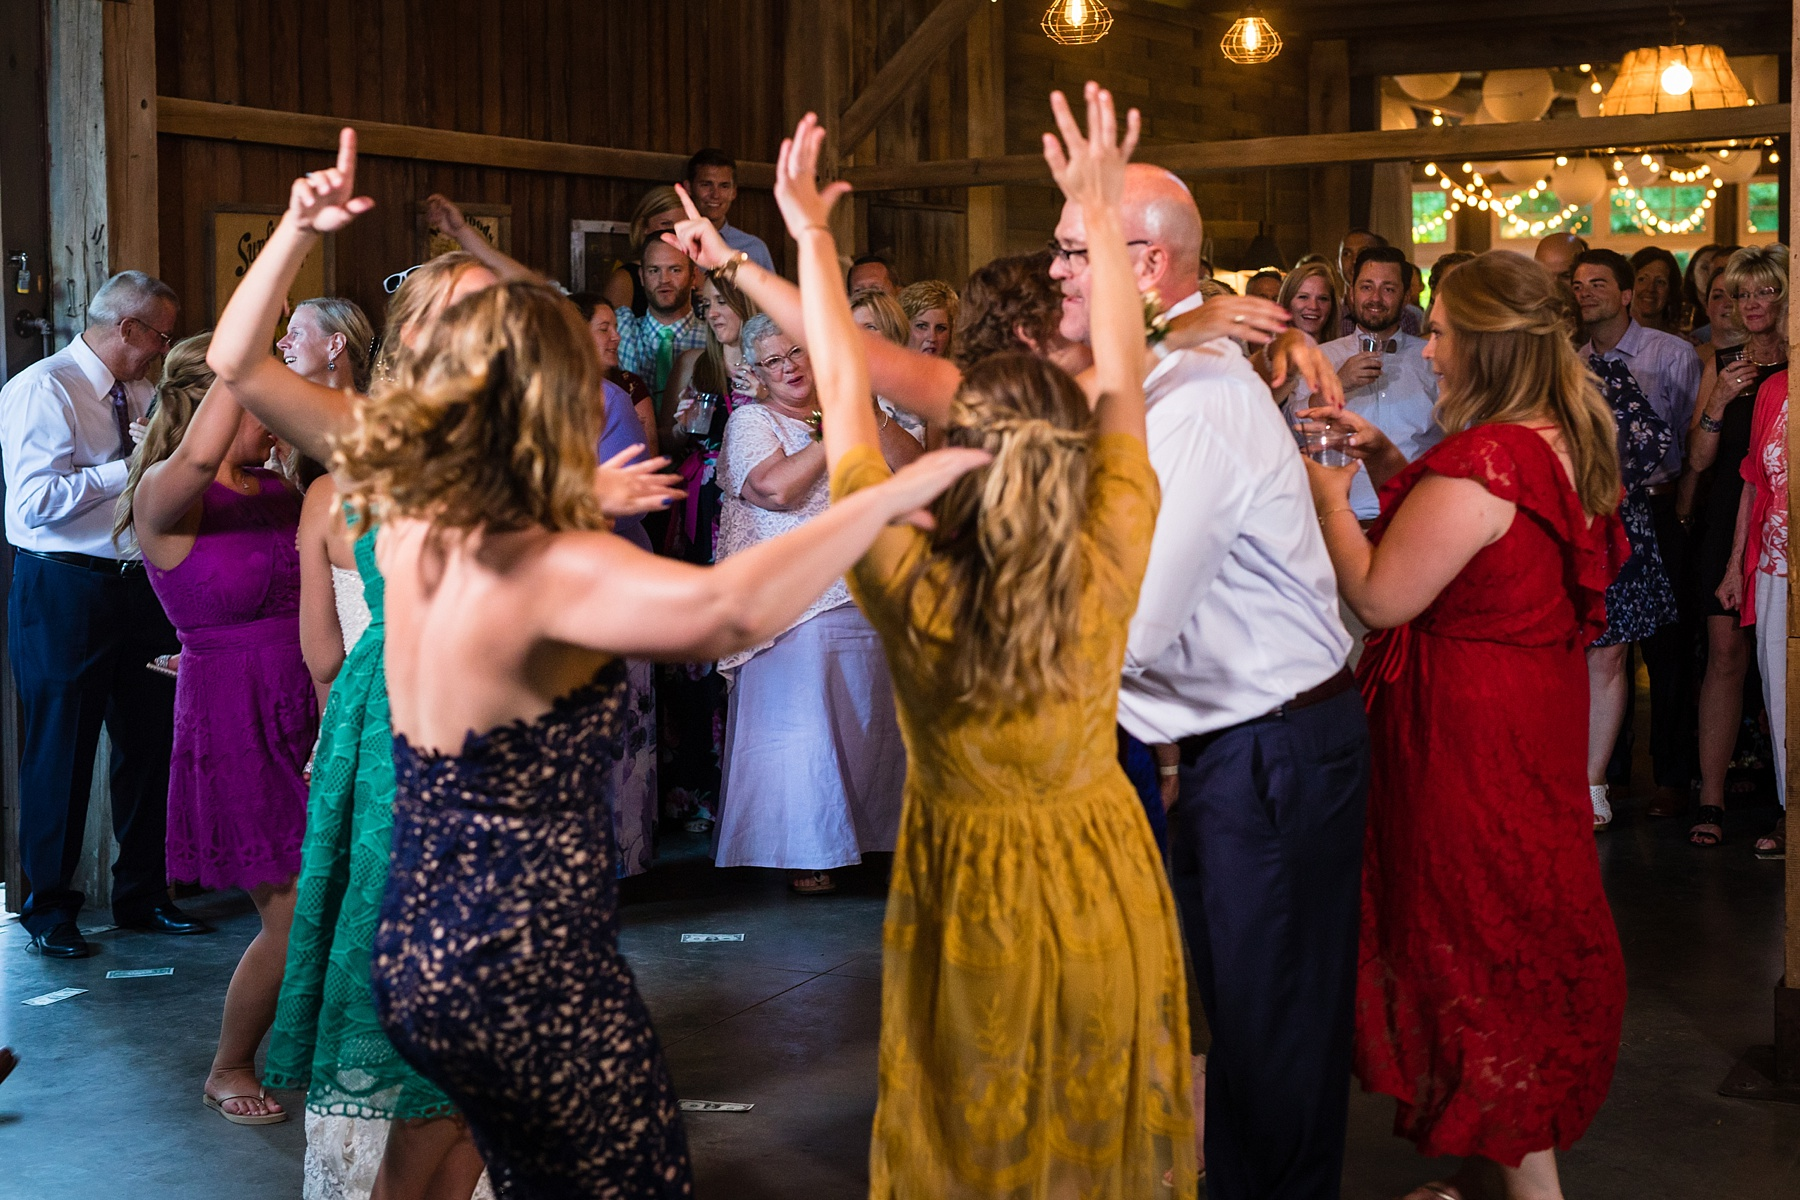 Brandon_Shafer_Photography_Millcreek_Wilde_Barn_Wedding_0046.jpg